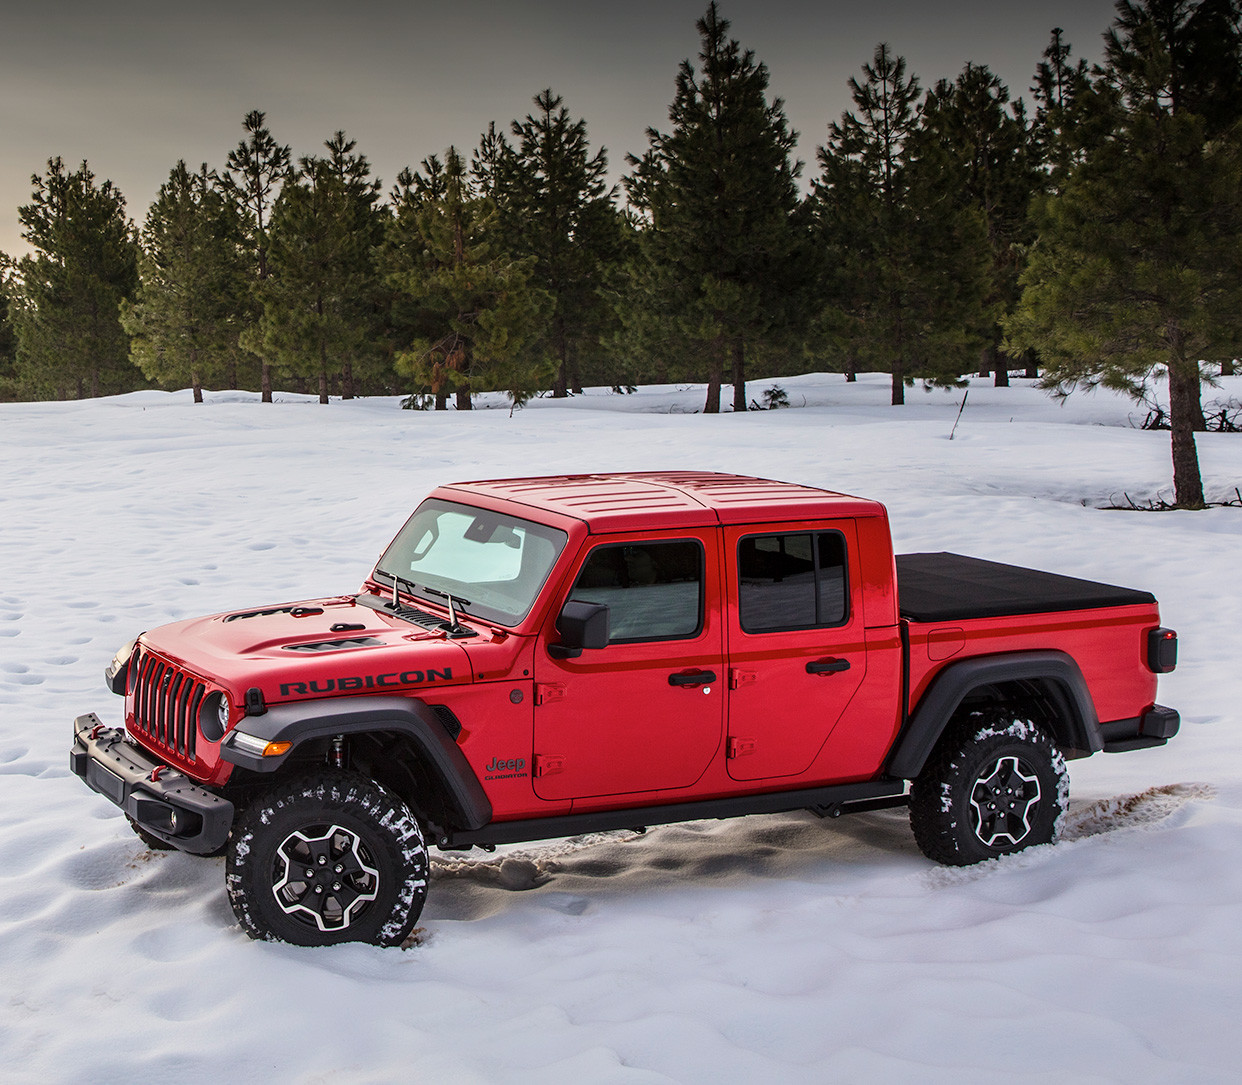 Top-down view of the all-new 2020 Jeep Gladiator in red parked in a snow covered field